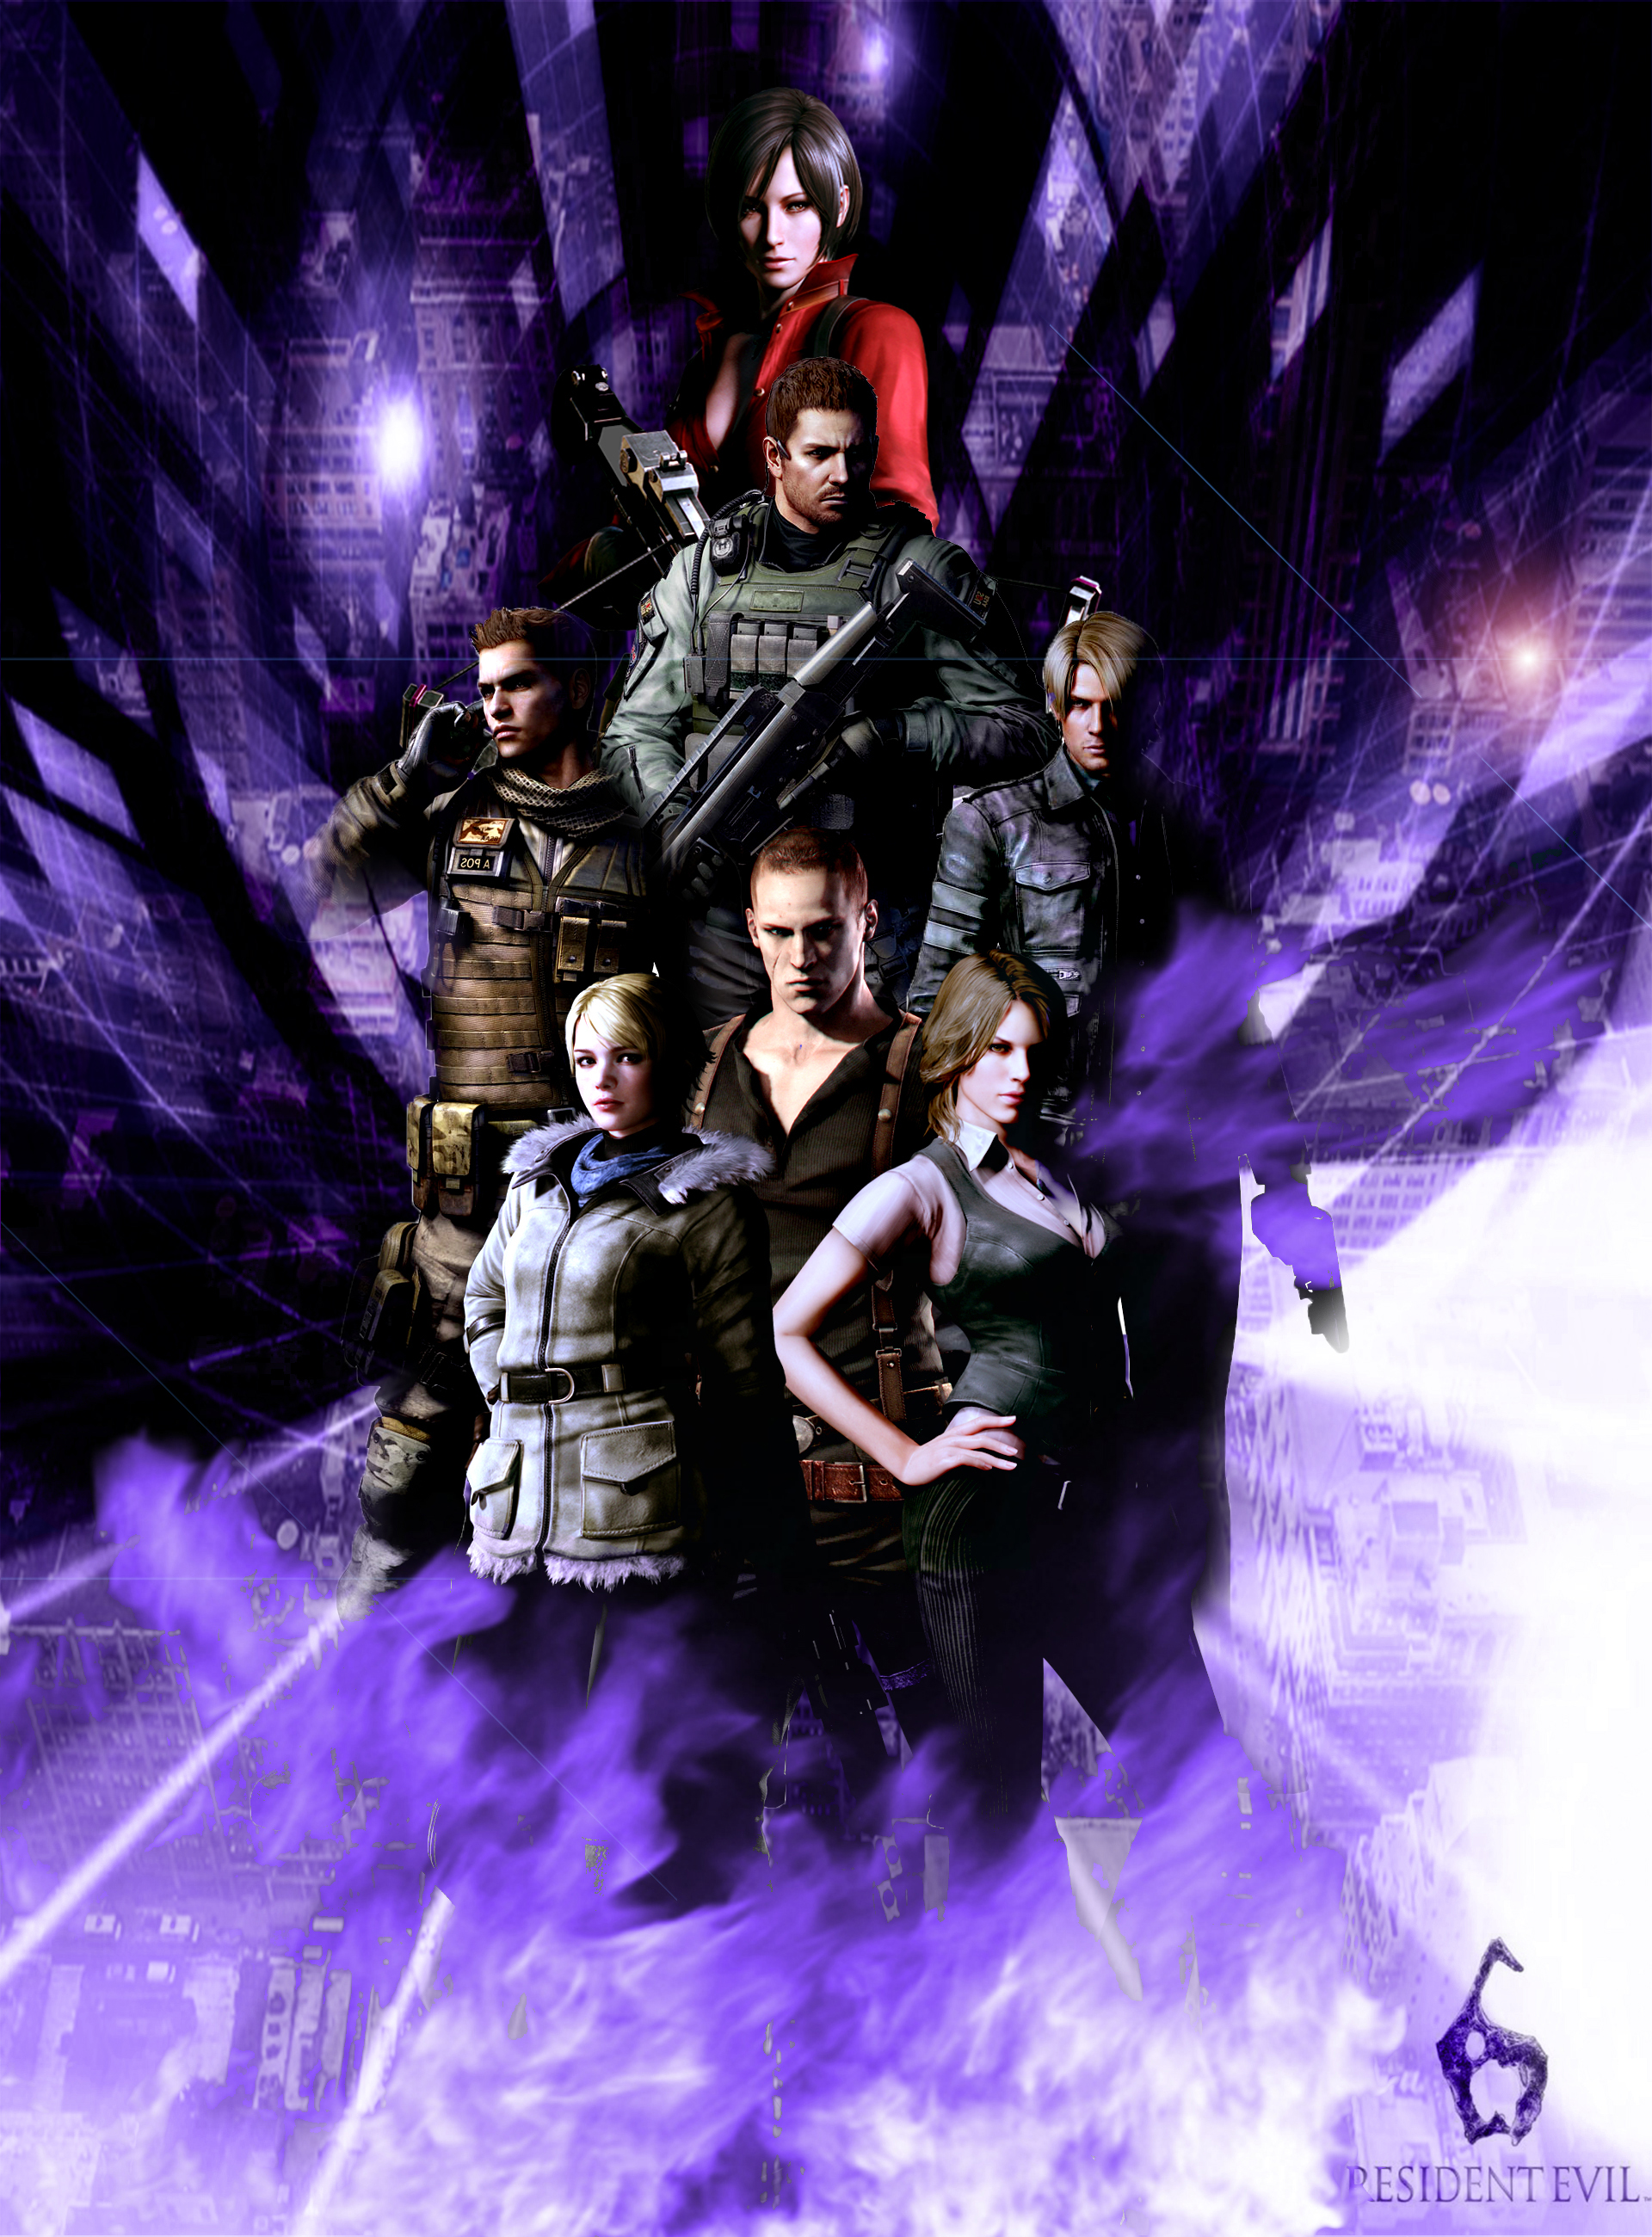 Resident Evil 6 Wallpaper By Germanwallpaper On Deviantart